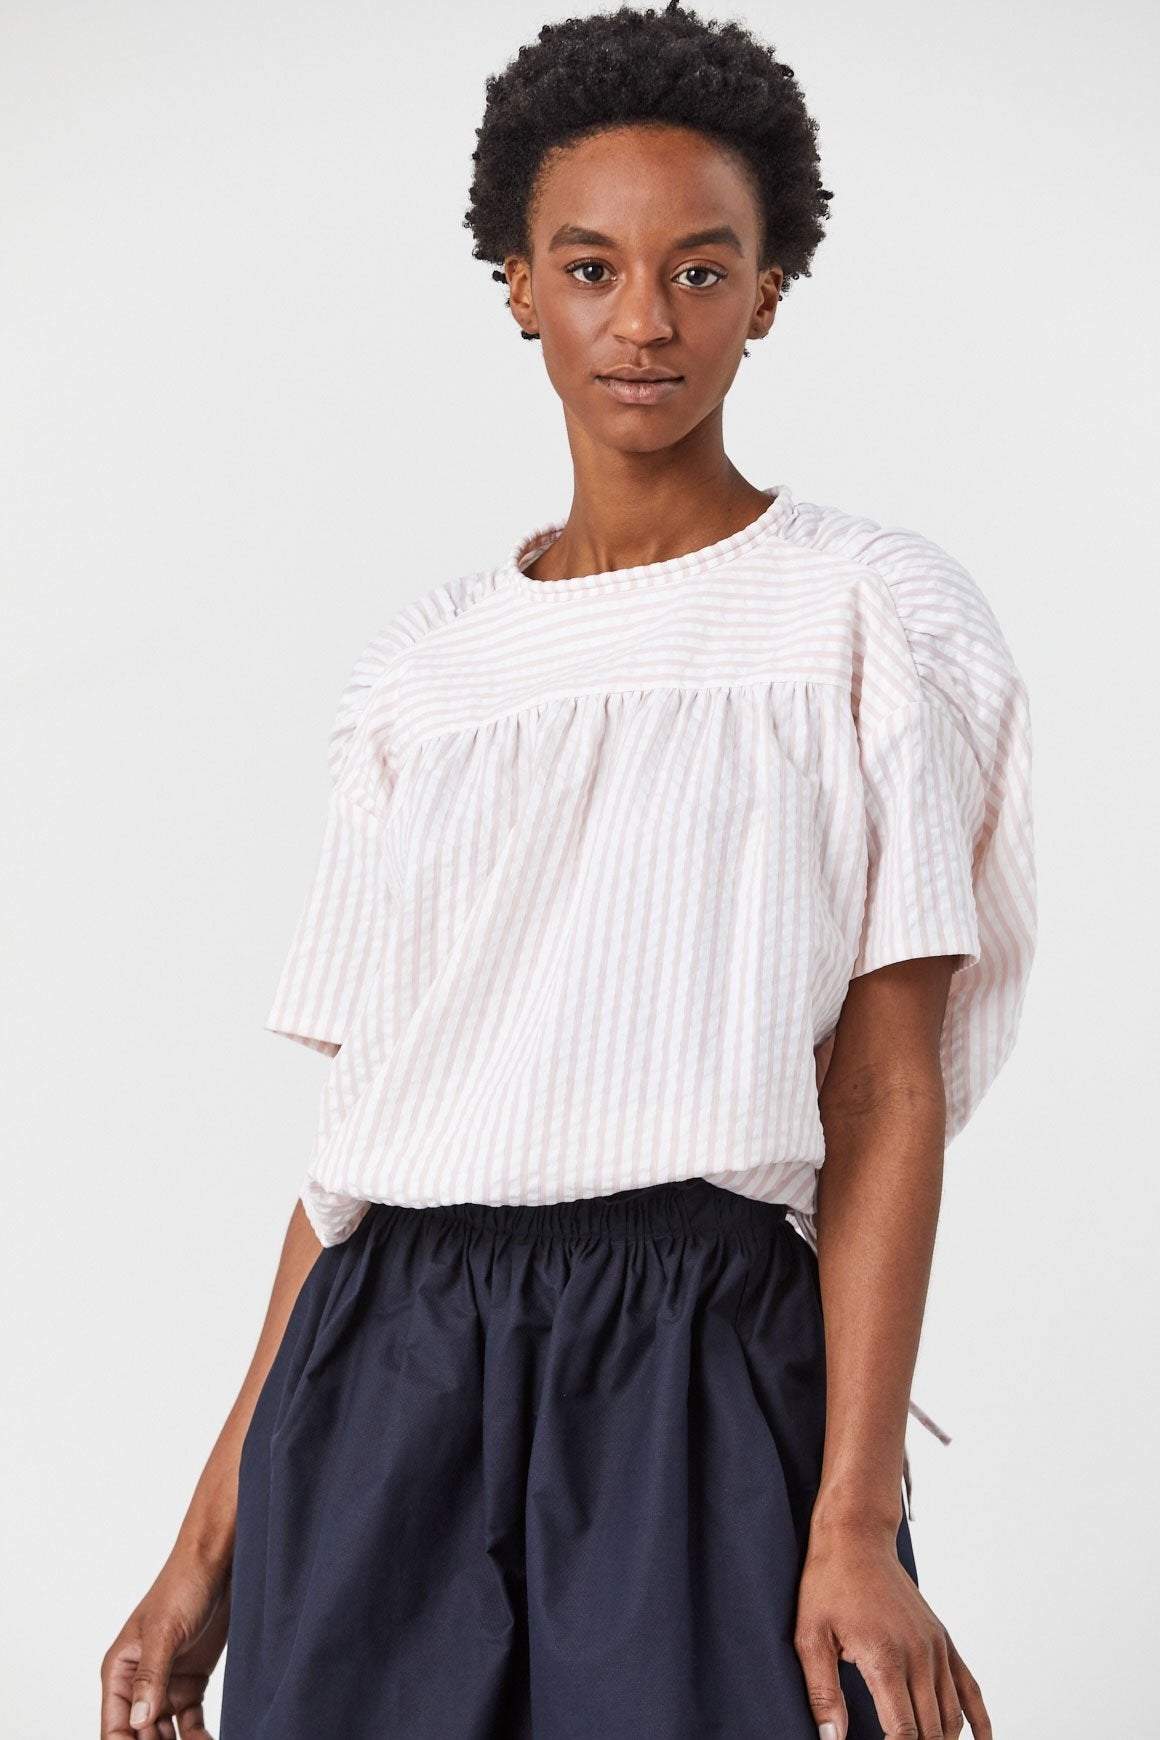 Atlantique Ascoli - Celeste Wide Cinch Top, White Stripe